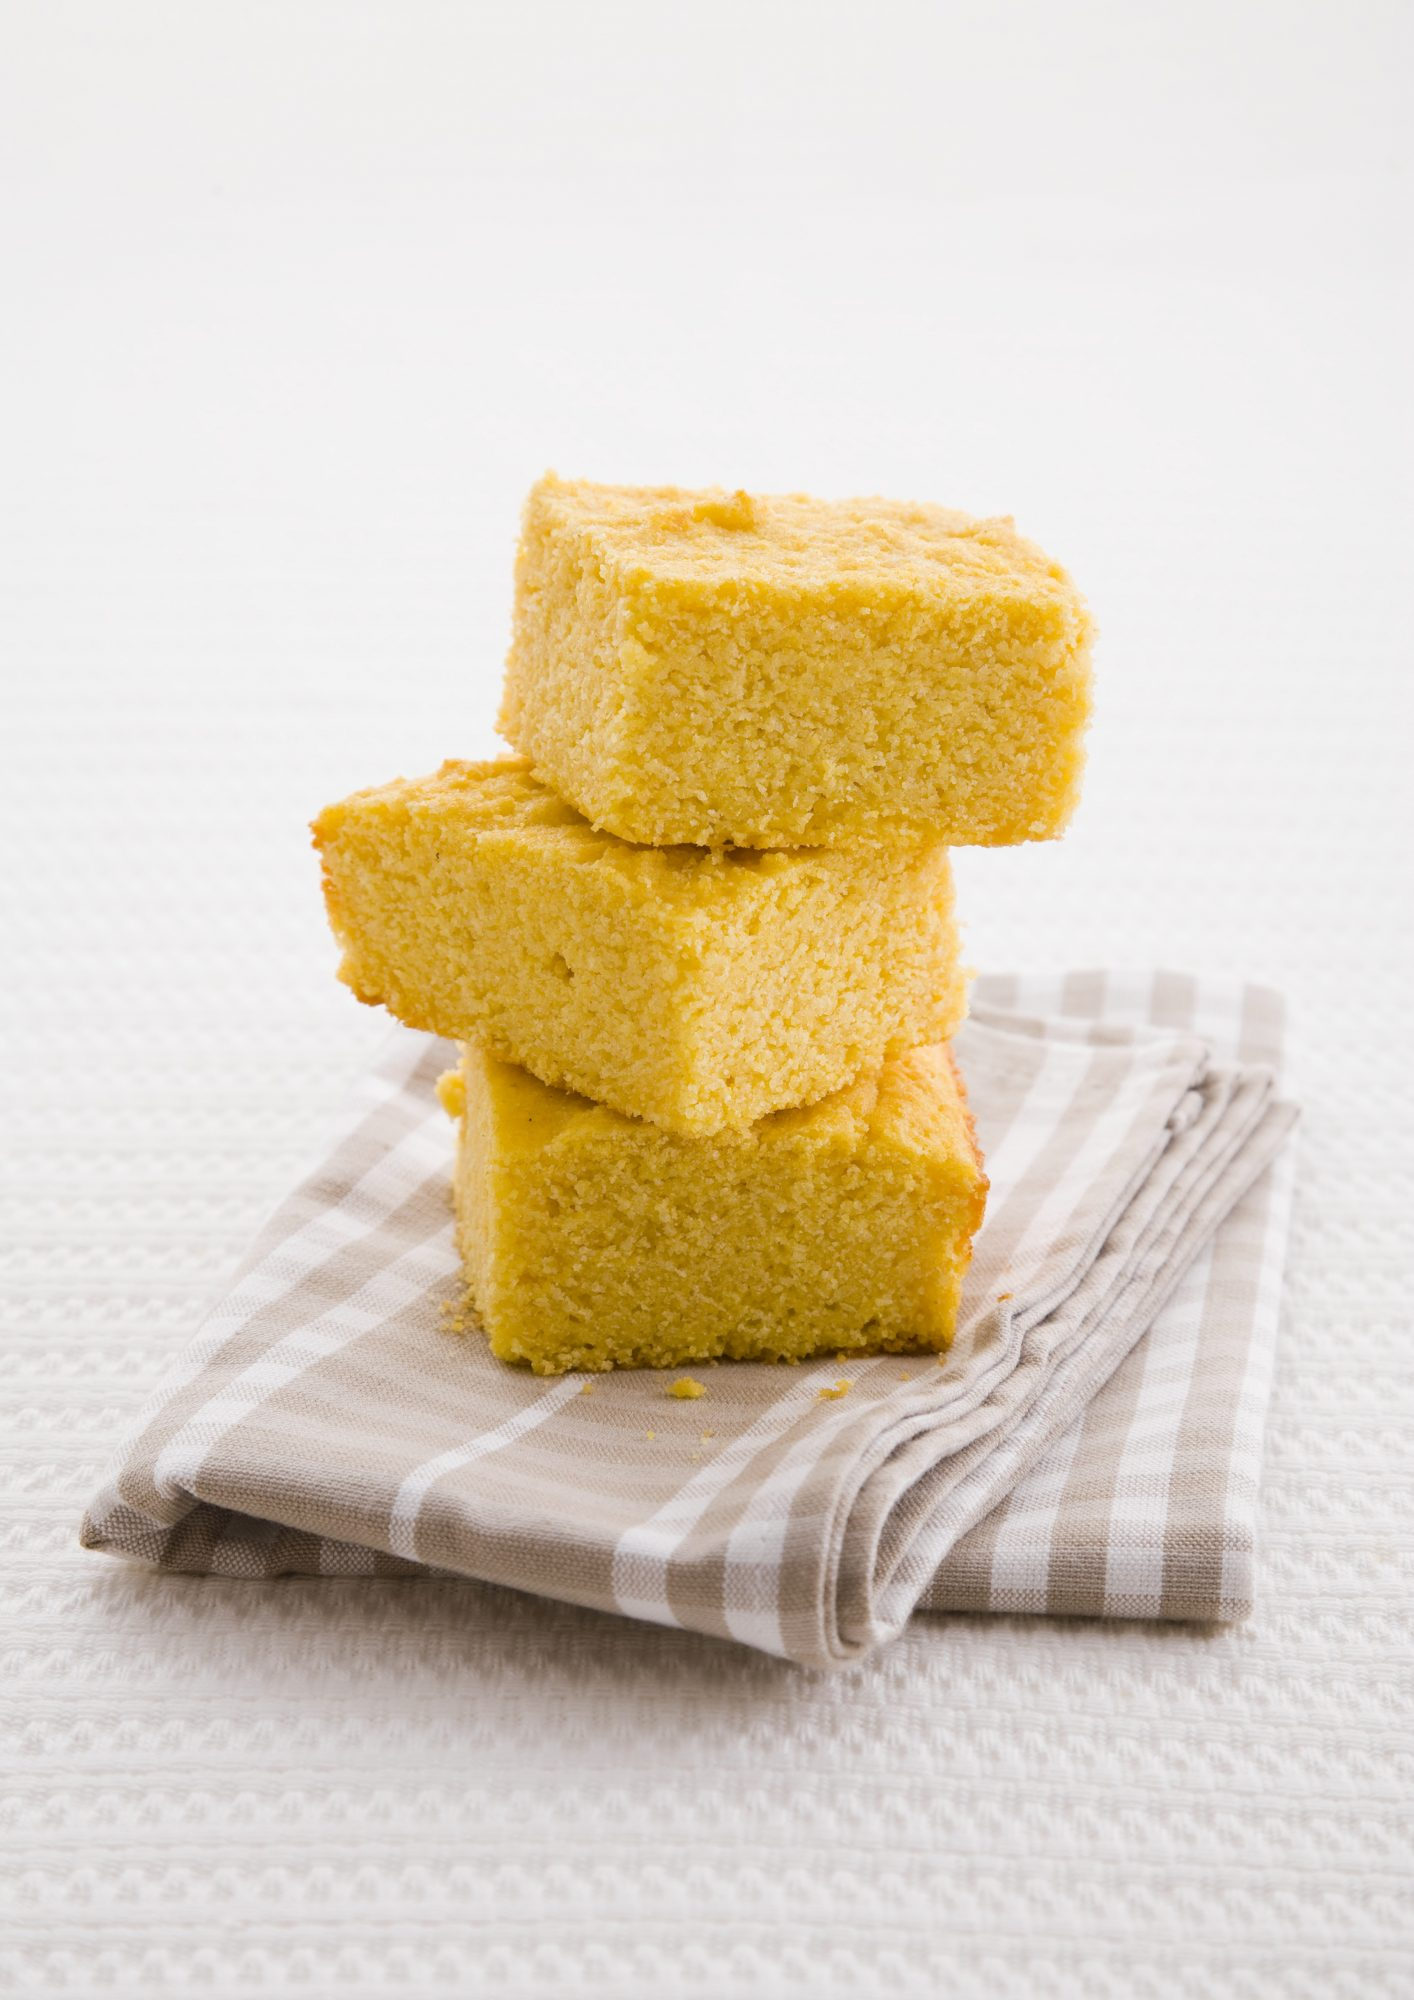 Myth #3: Adding sugar to cornbread is blasphemous.